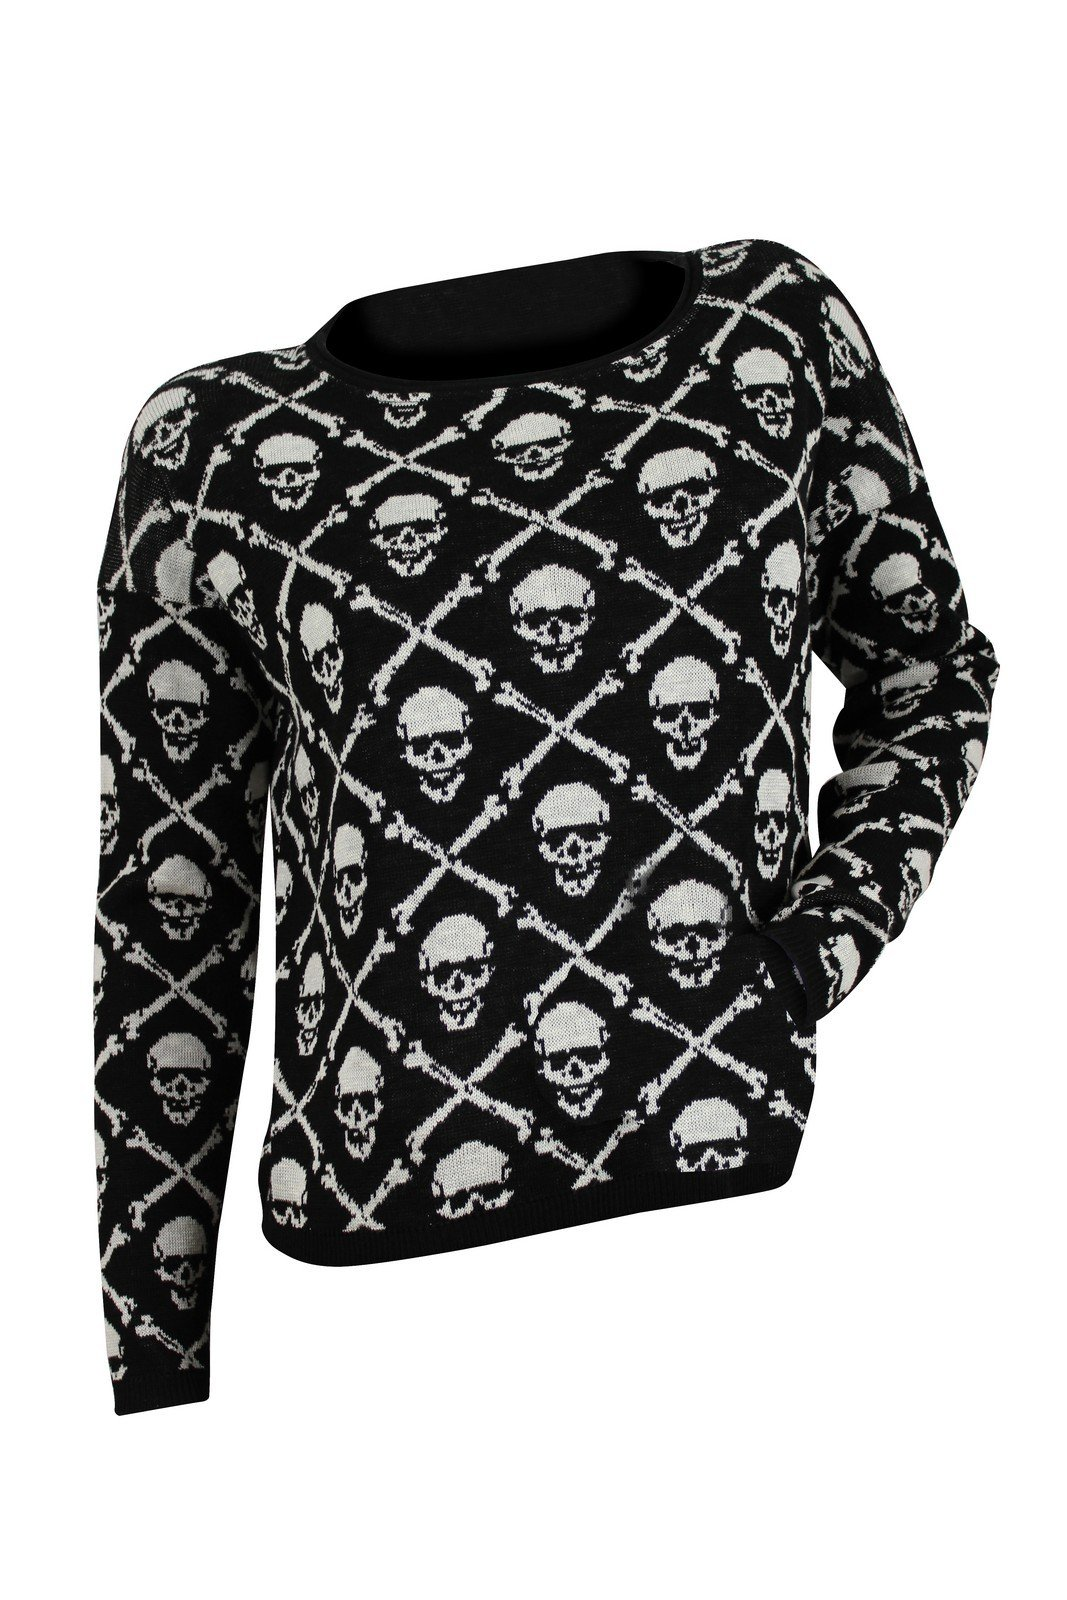 Ralph Lauren Women's Black White Skull Head Jacquard Sweater